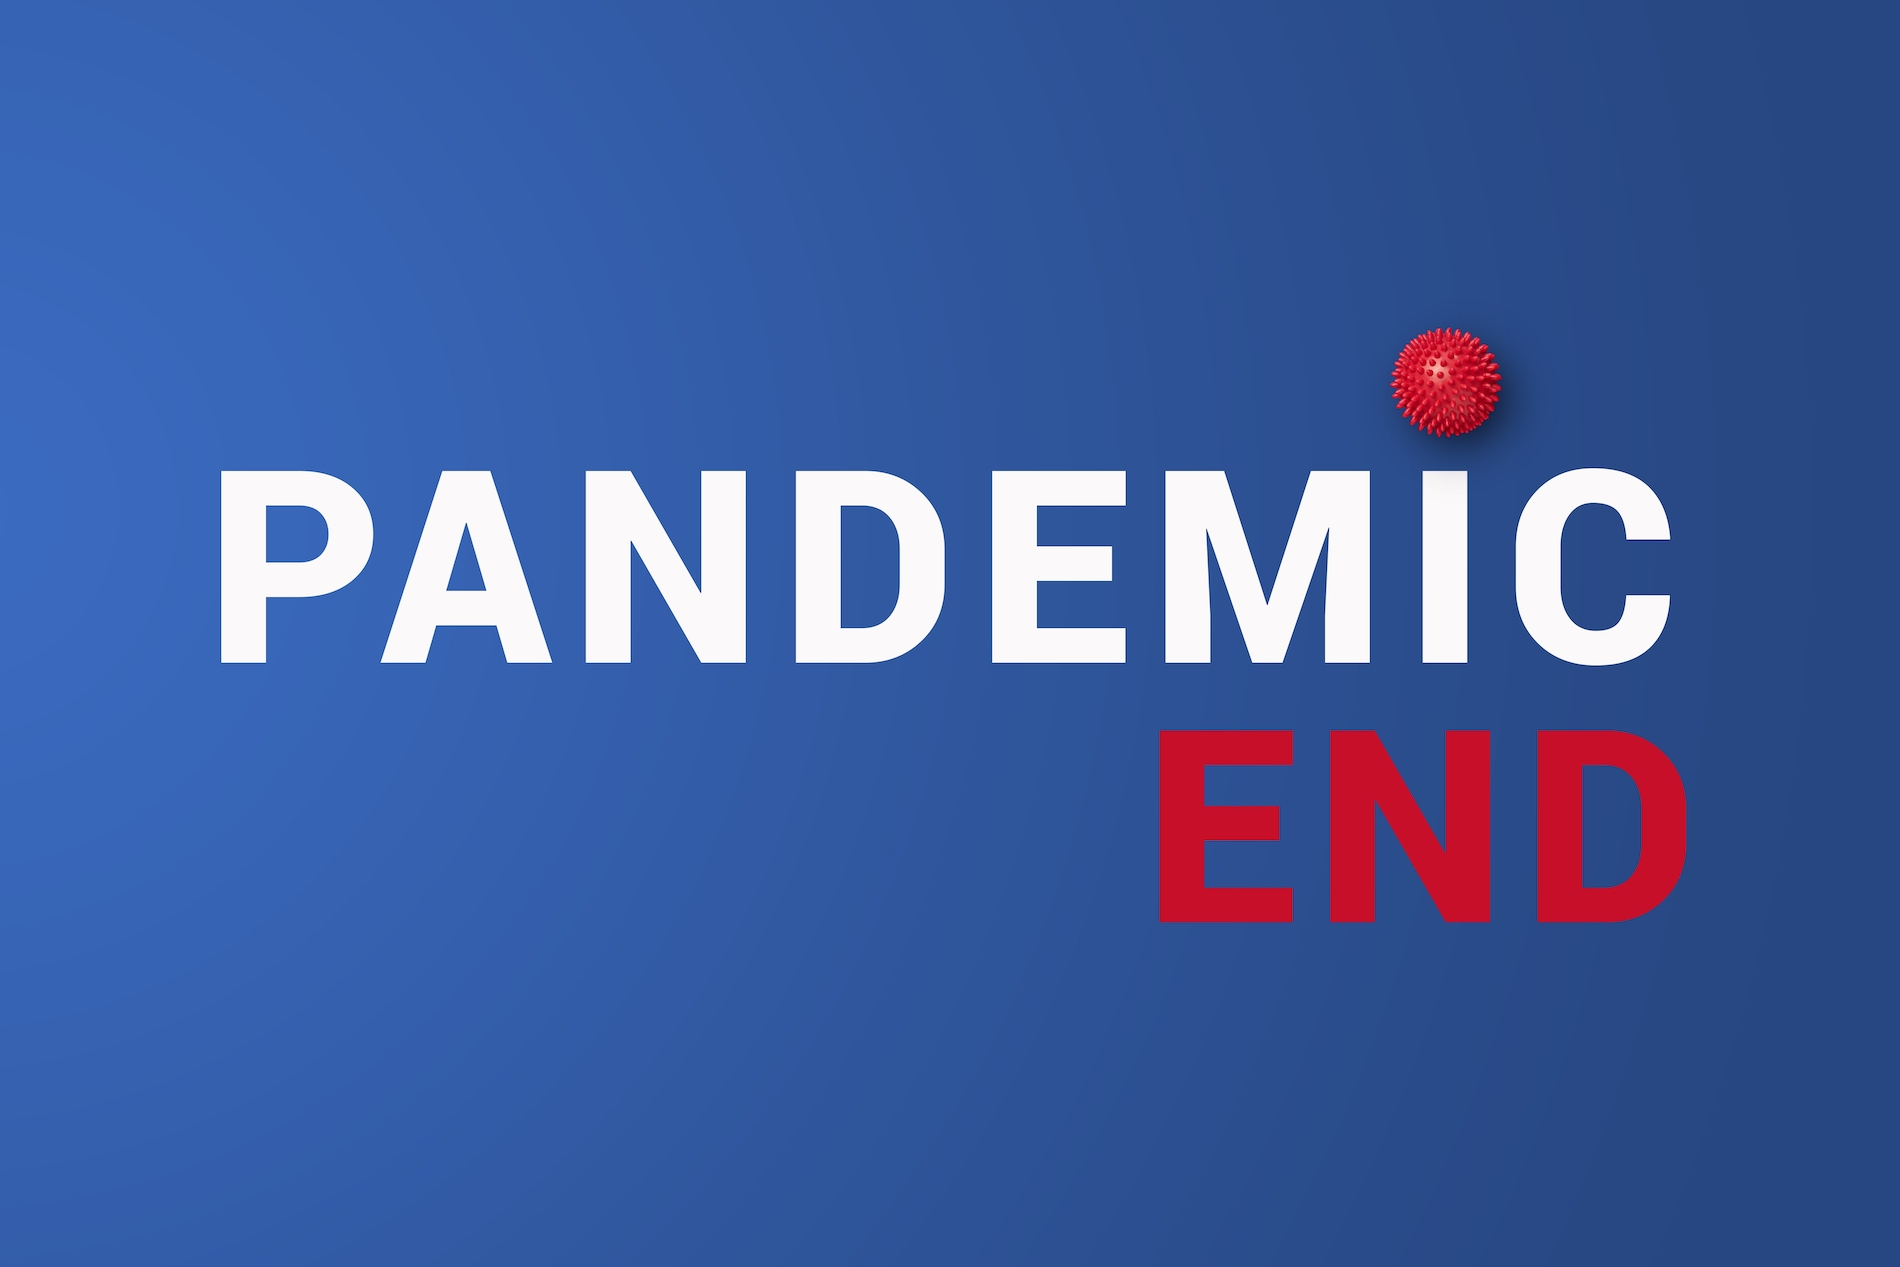 IMF, WBG, WHO and WTO beseech leaders to fund $50 billion pandemic recovery